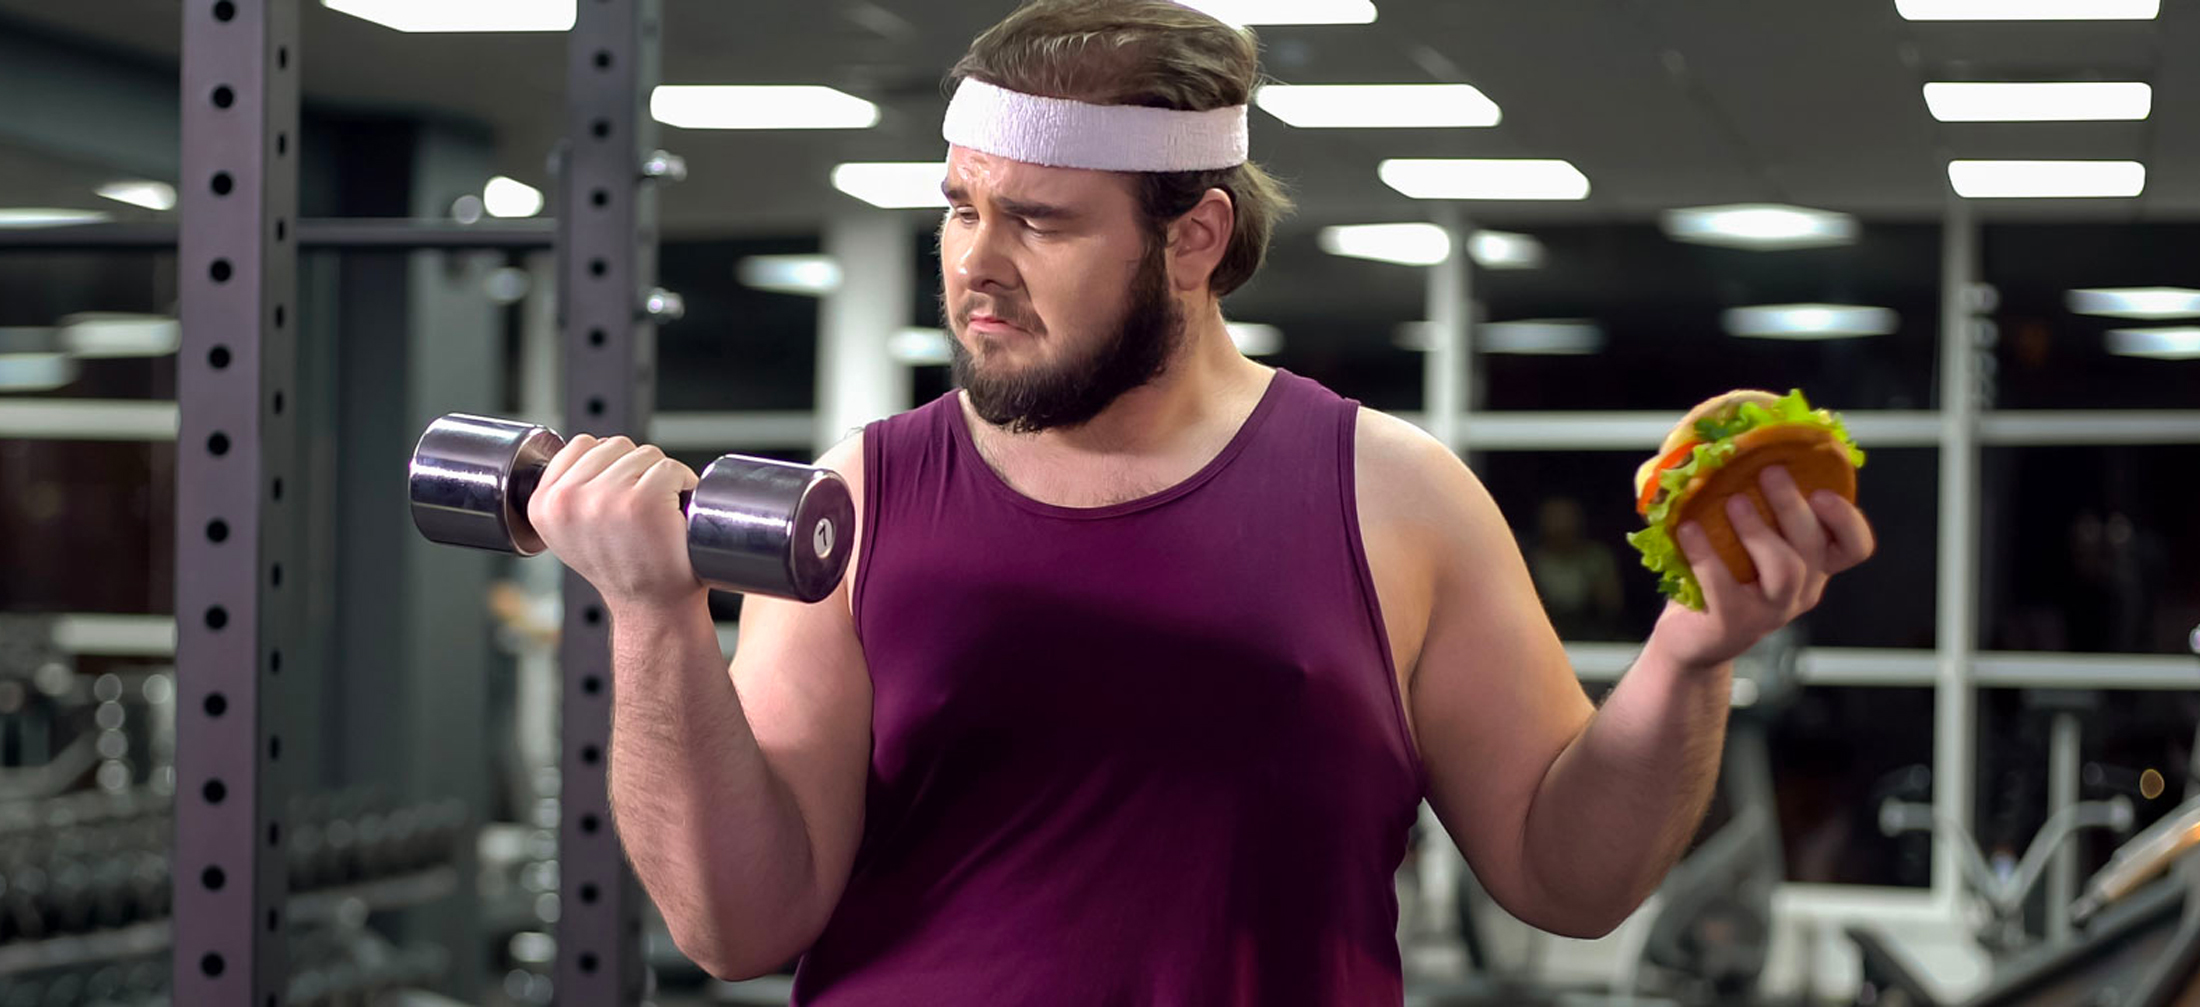 guy in gym holding weight and hamburger